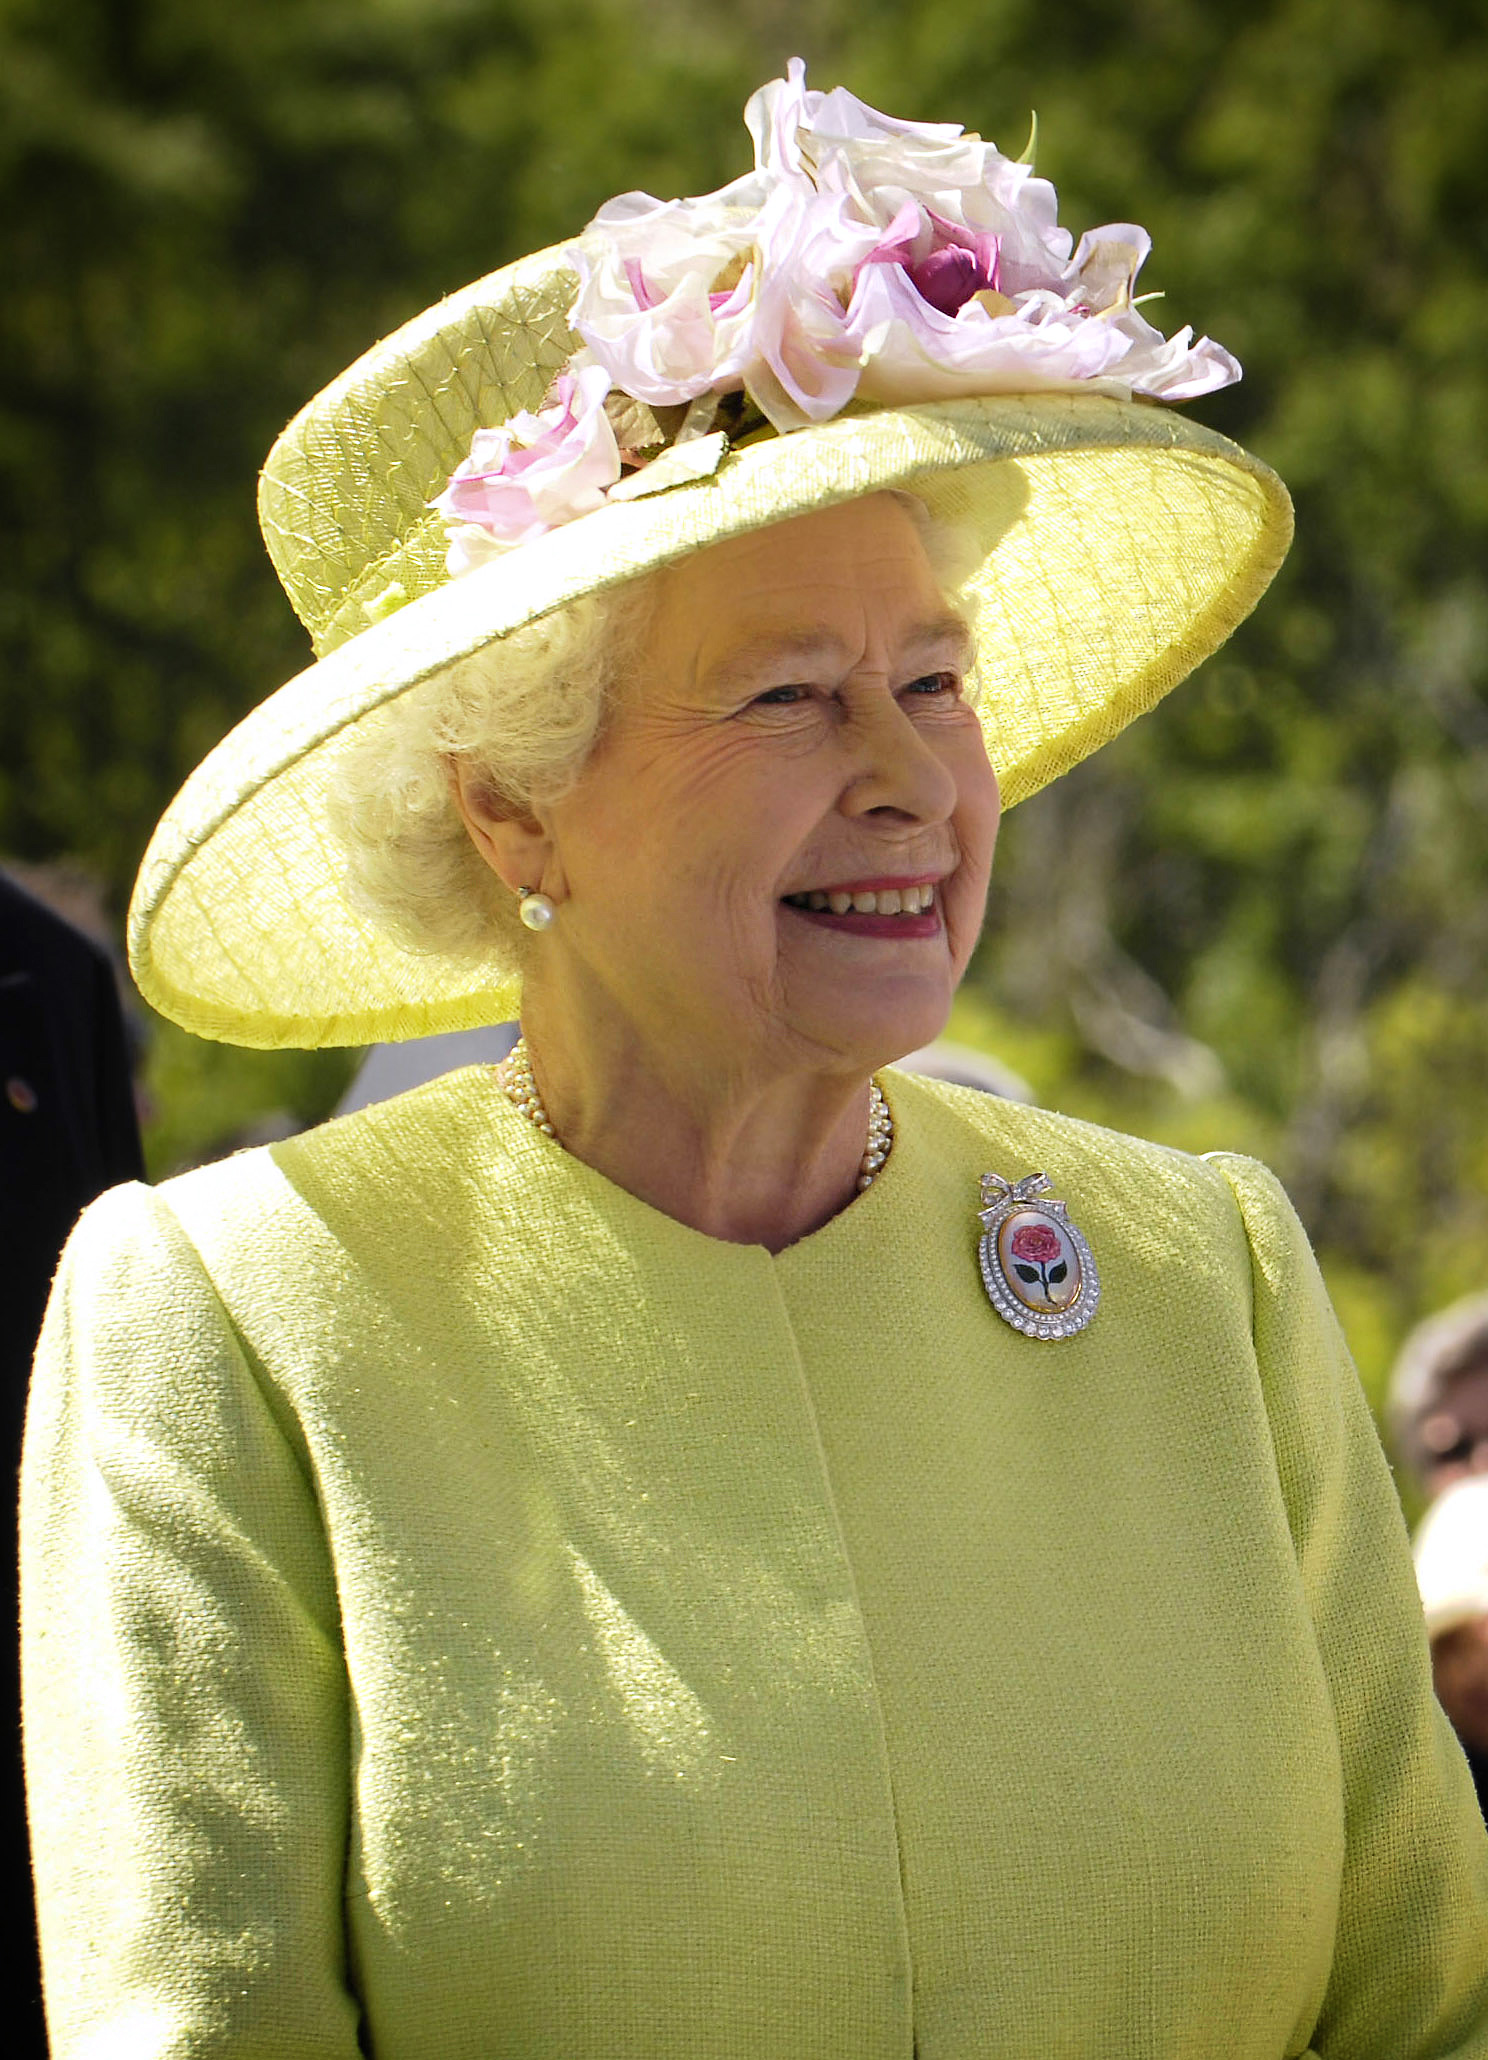 Photo of Queen Elizabeth II in a yellow suit with a lovely hat with flowers surrounding it.